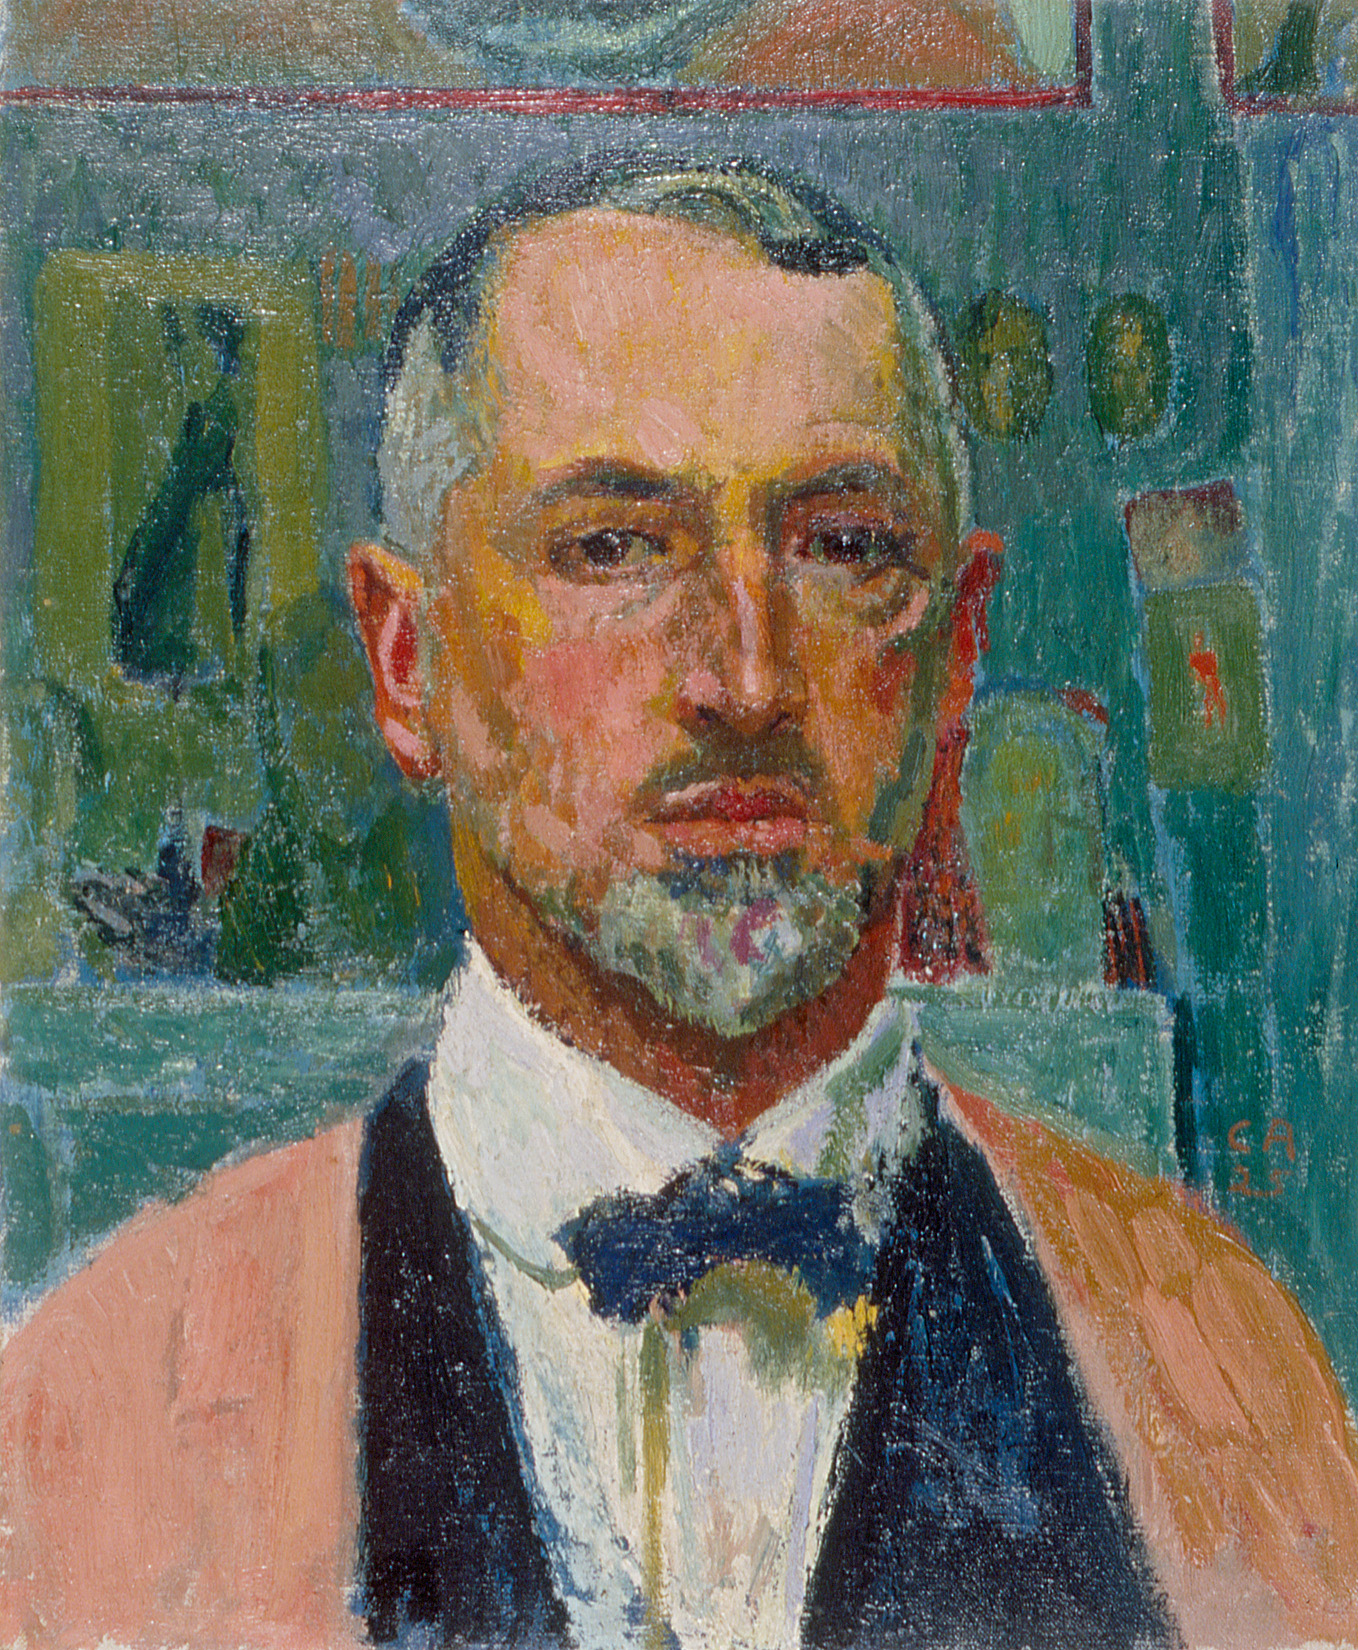 Cuno Amiet, Self-portrait, 1925